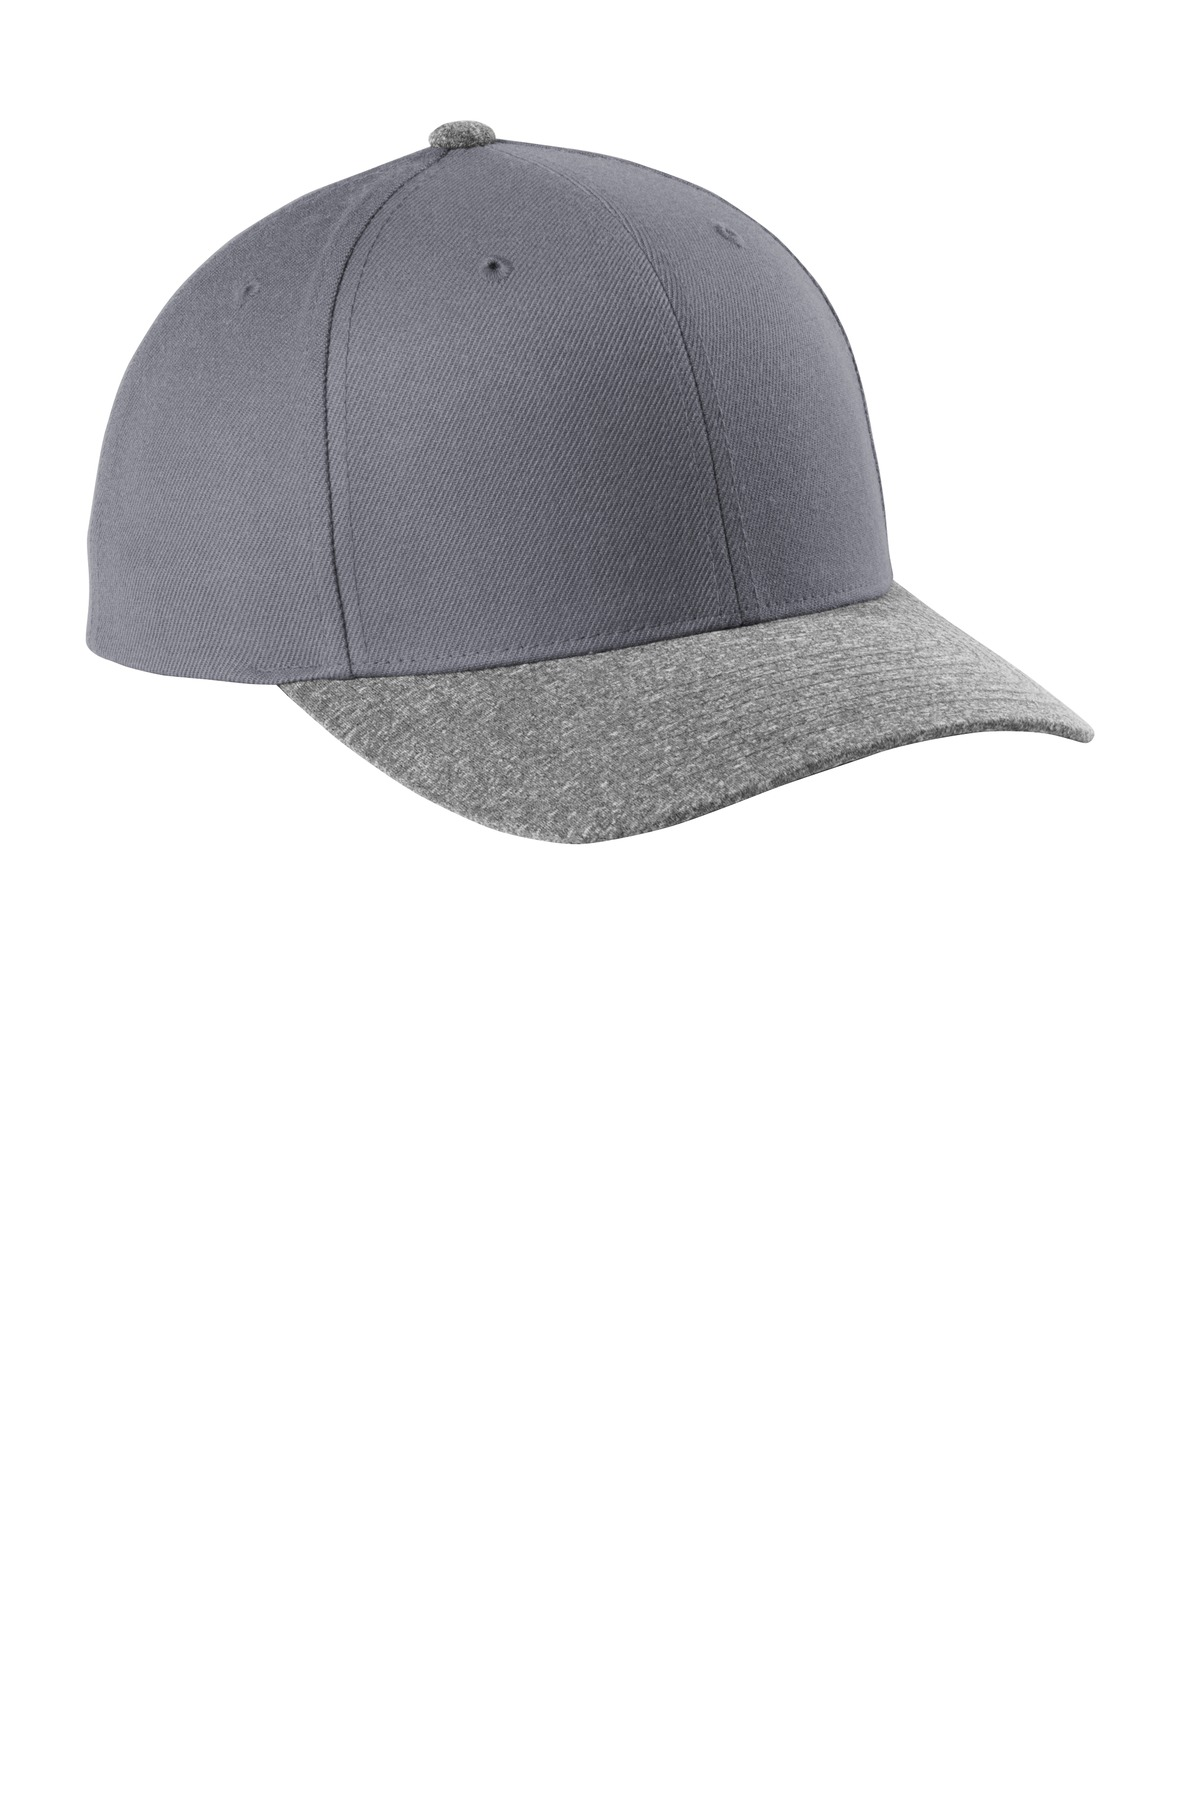 Sport-Tek  ®  Yupoong  ®  Curve Bill Snapback Cap. STC43 - Graphite/ Grey Heather